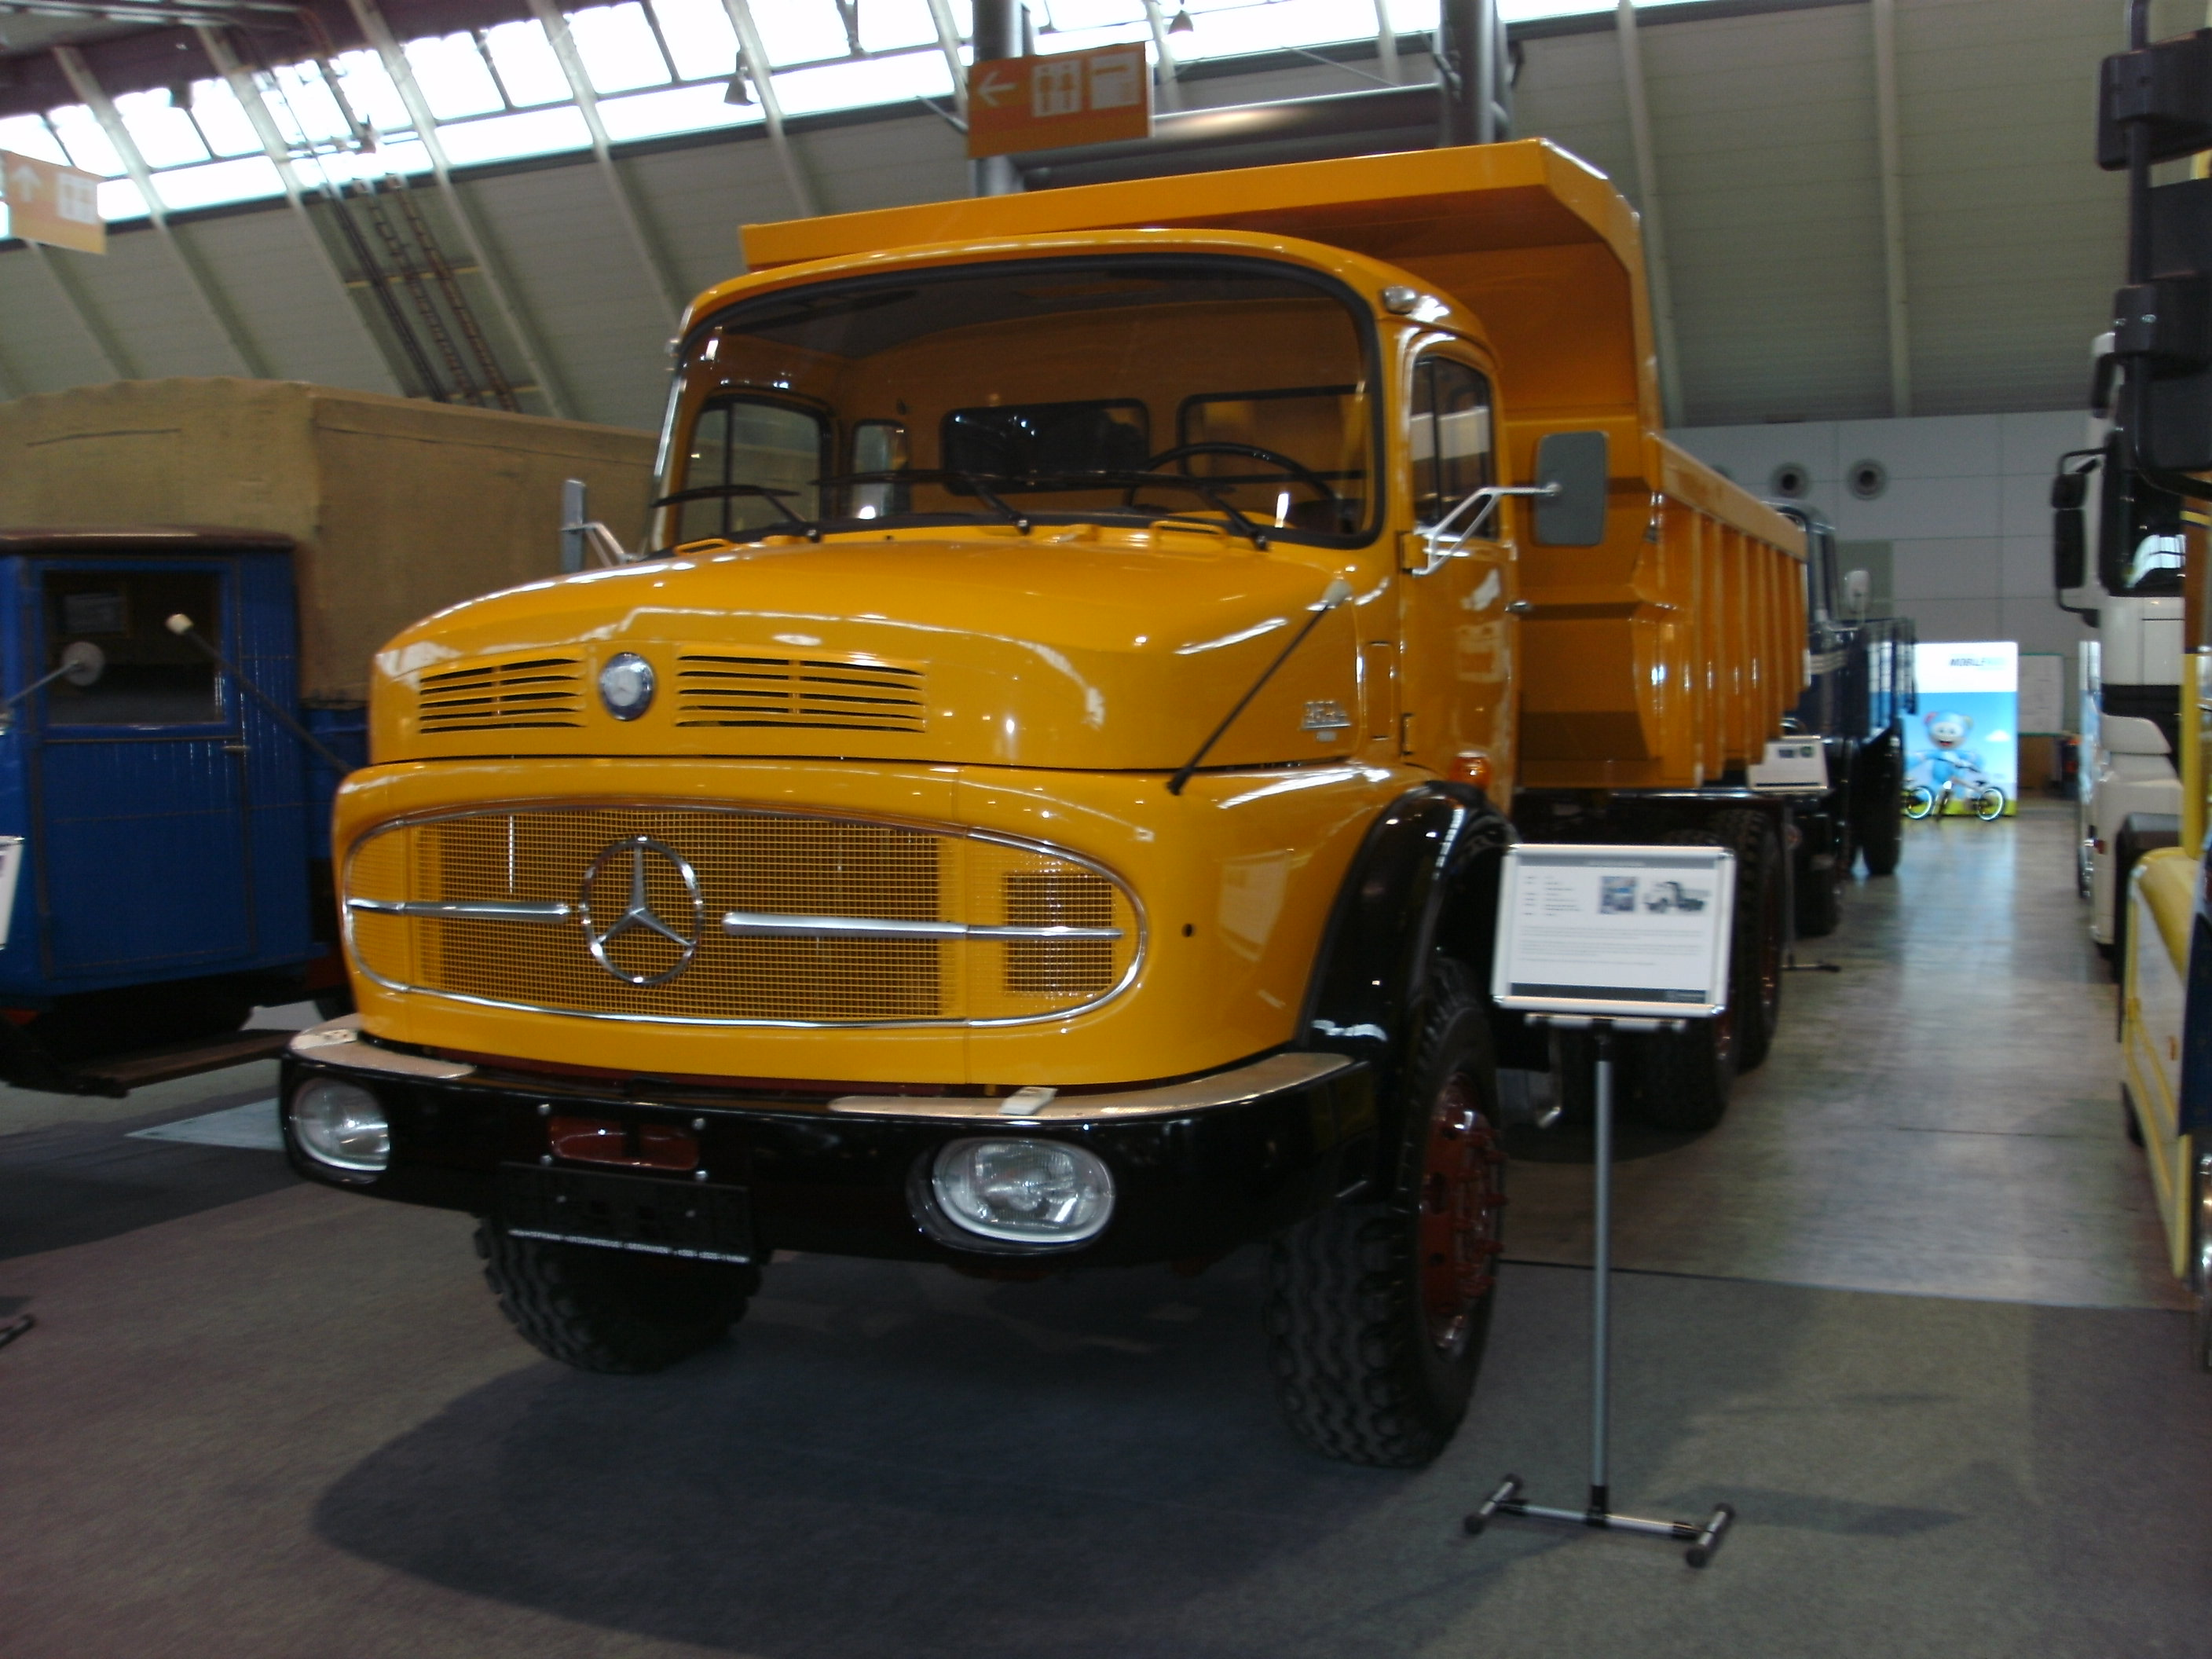 File:Mercedes-Benz LAK 2624 (1974, 240 PS).jpg